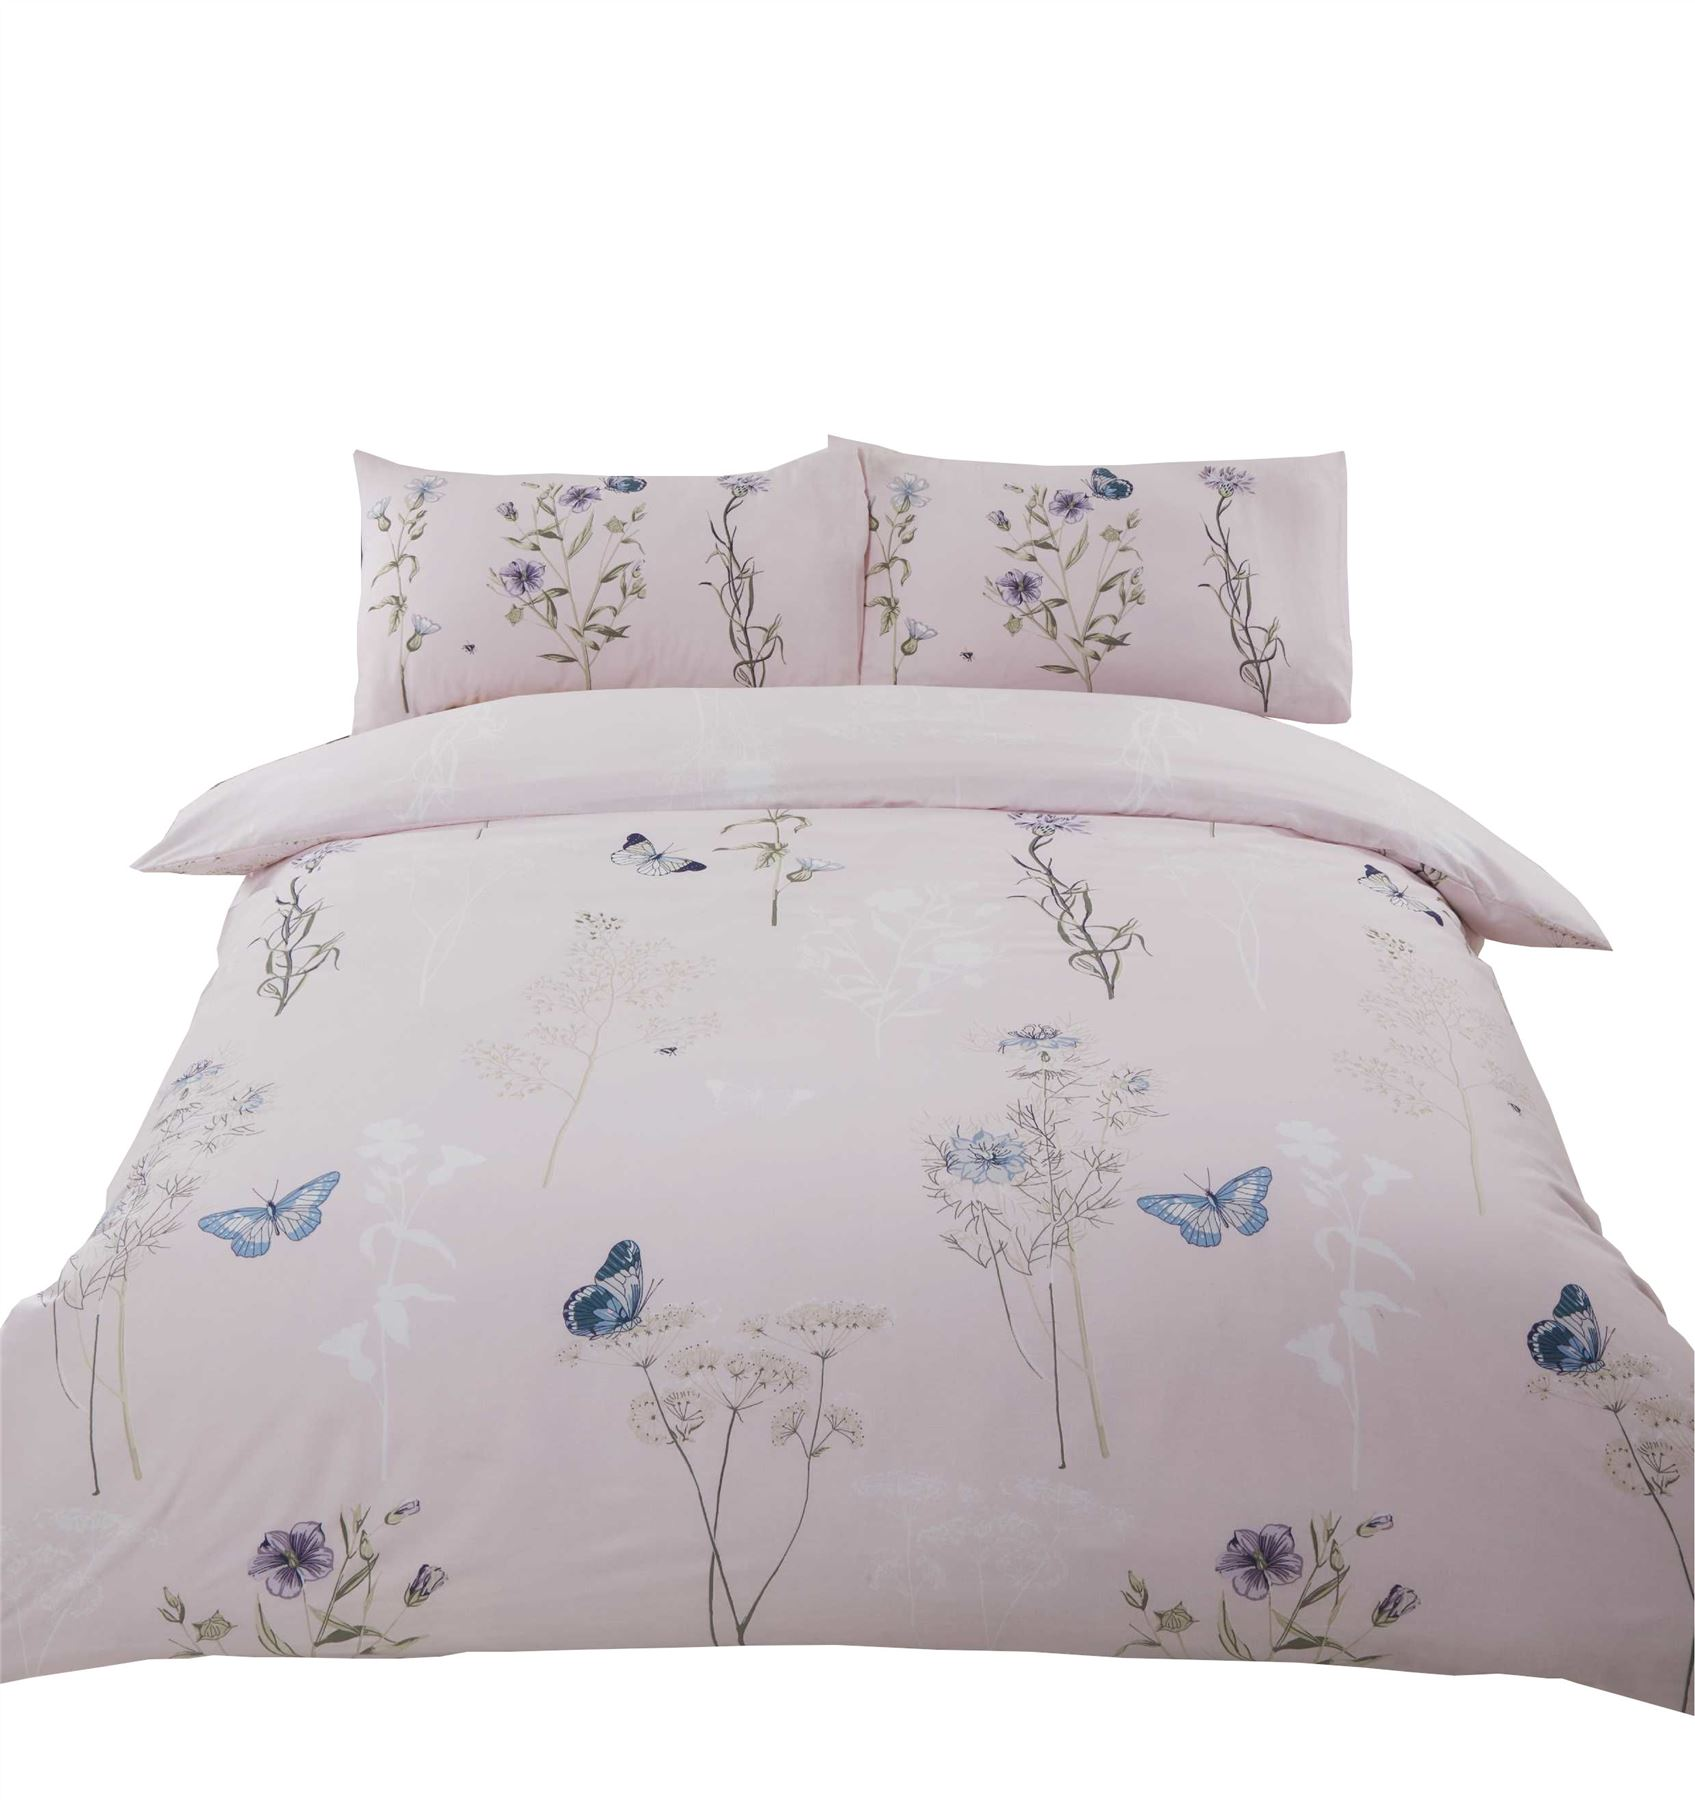 Copripiumino Singolo Rosa.Floral Flowers Butterflies Pink Powder Cotton Single Duvet Cover